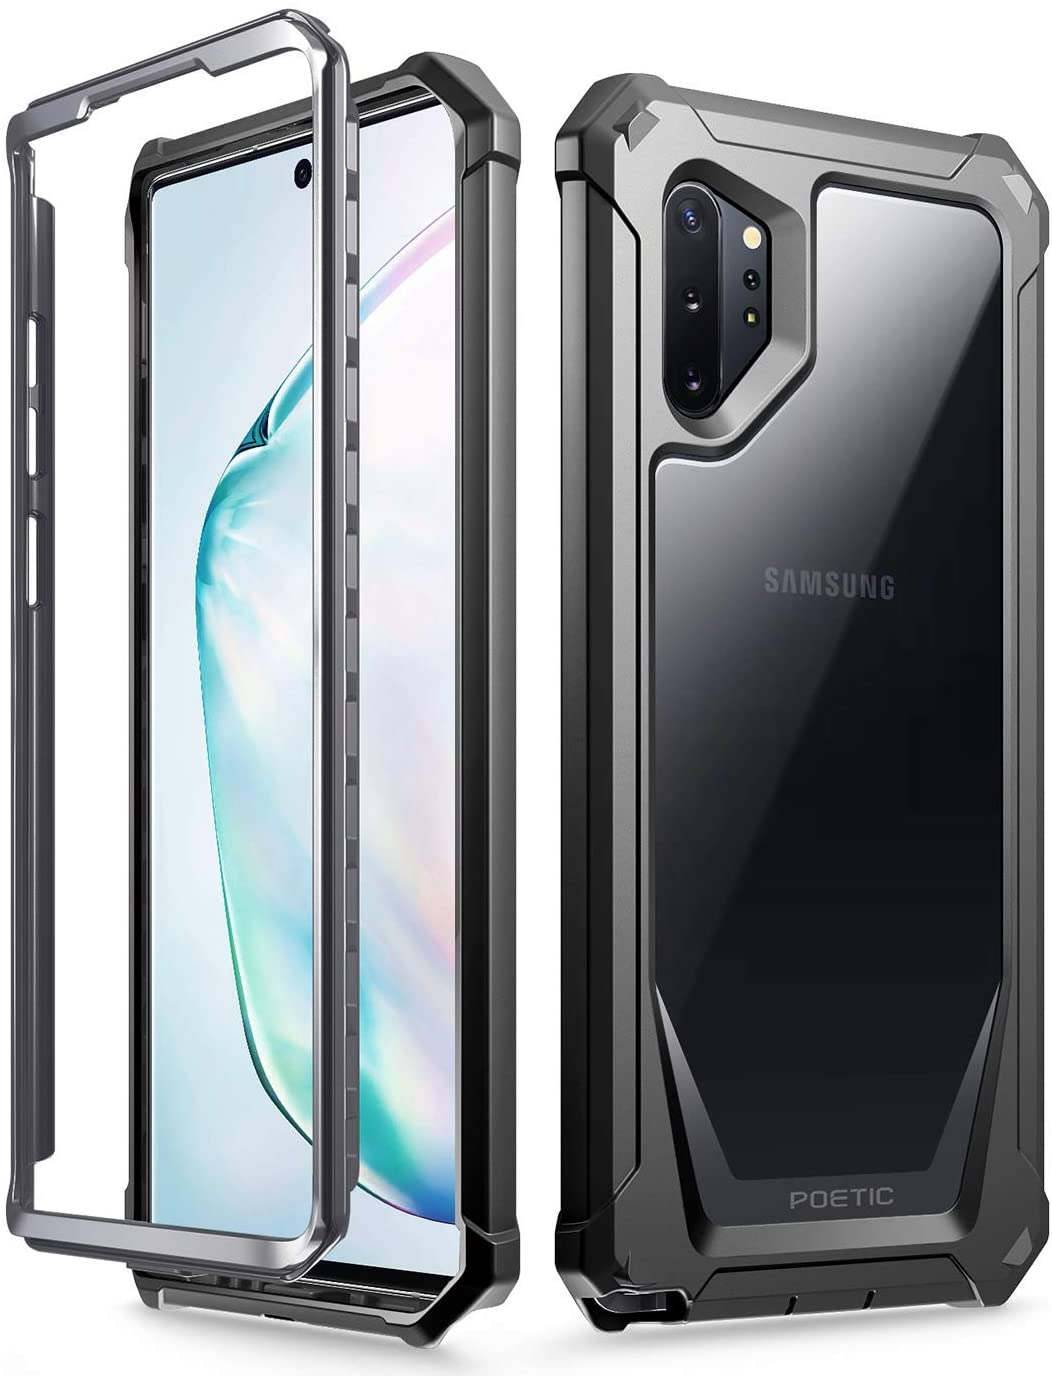 Galaxy Note 10 Plus Rugged Clear Case, Poetic Full-Body Bumper Cover, Support Wireless Charging, Without Built-in-Screen Protector, Guardian, Case for Samsung Galaxy Note 10+ Plus 5G, Black